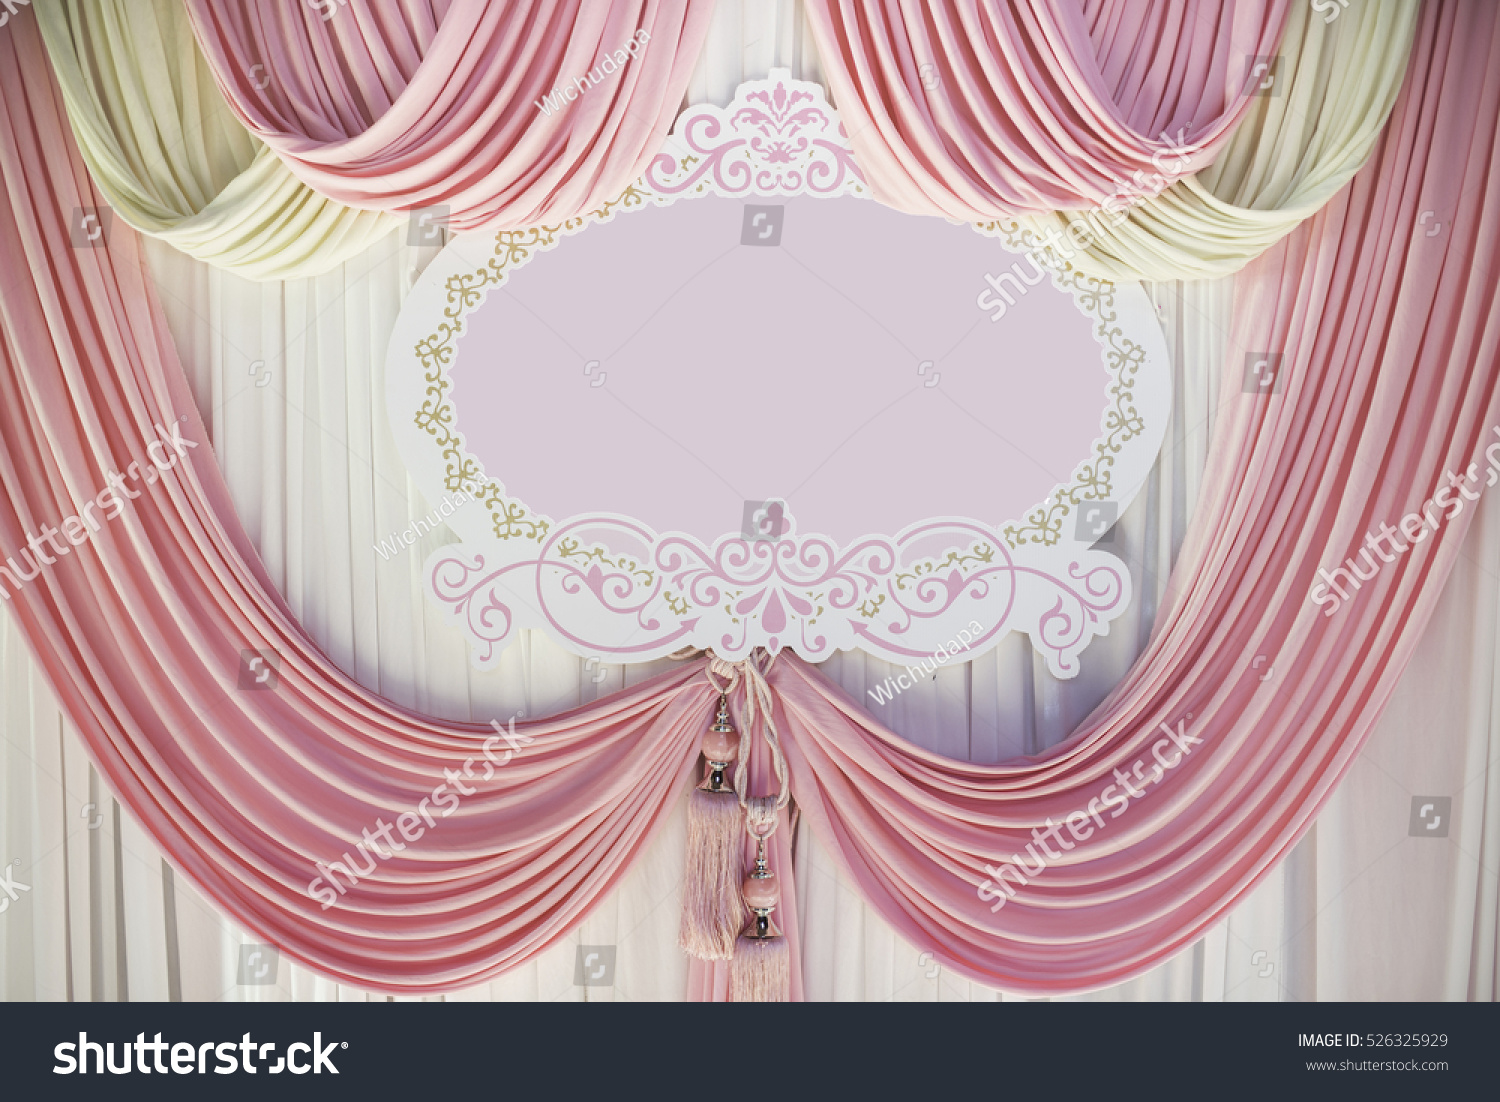 Pastel Pink Curtain Lace Curtains For Background And Label Of Celebration